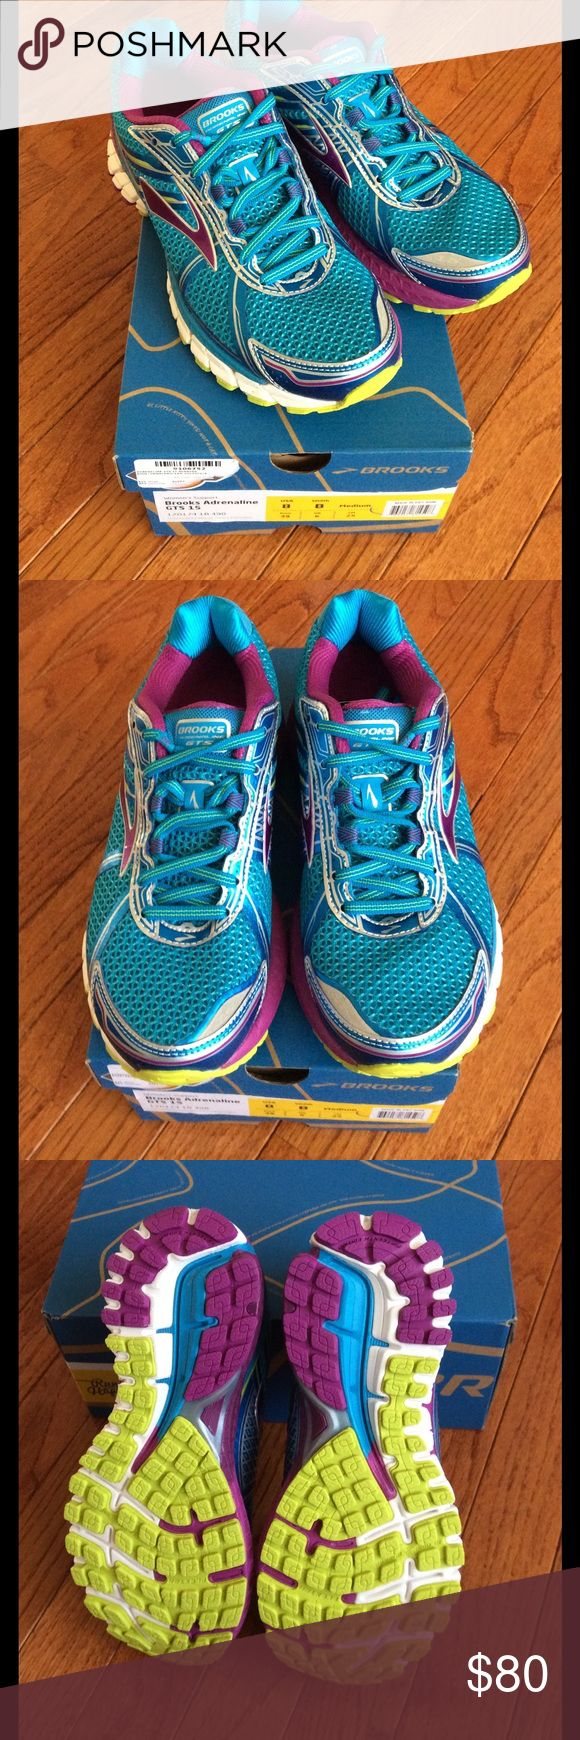 🆕 BROOKS adrenaline shoes- women's size US 8 These are brand new Brooks adrenaline 15 shoes  women's size US 8 EU 39 Retails $120  ***PRICE IS FIRM***  My sister purchased these for cross country this season, but haven't worn them. Last one!   NO OFFERS or NEGOTIATIONS please!  Thank you for understanding  :)   I also have a NEW Brooks Ravenna size 8 if interested- please see my other listings :) Brooks Shoes Athletic Shoes